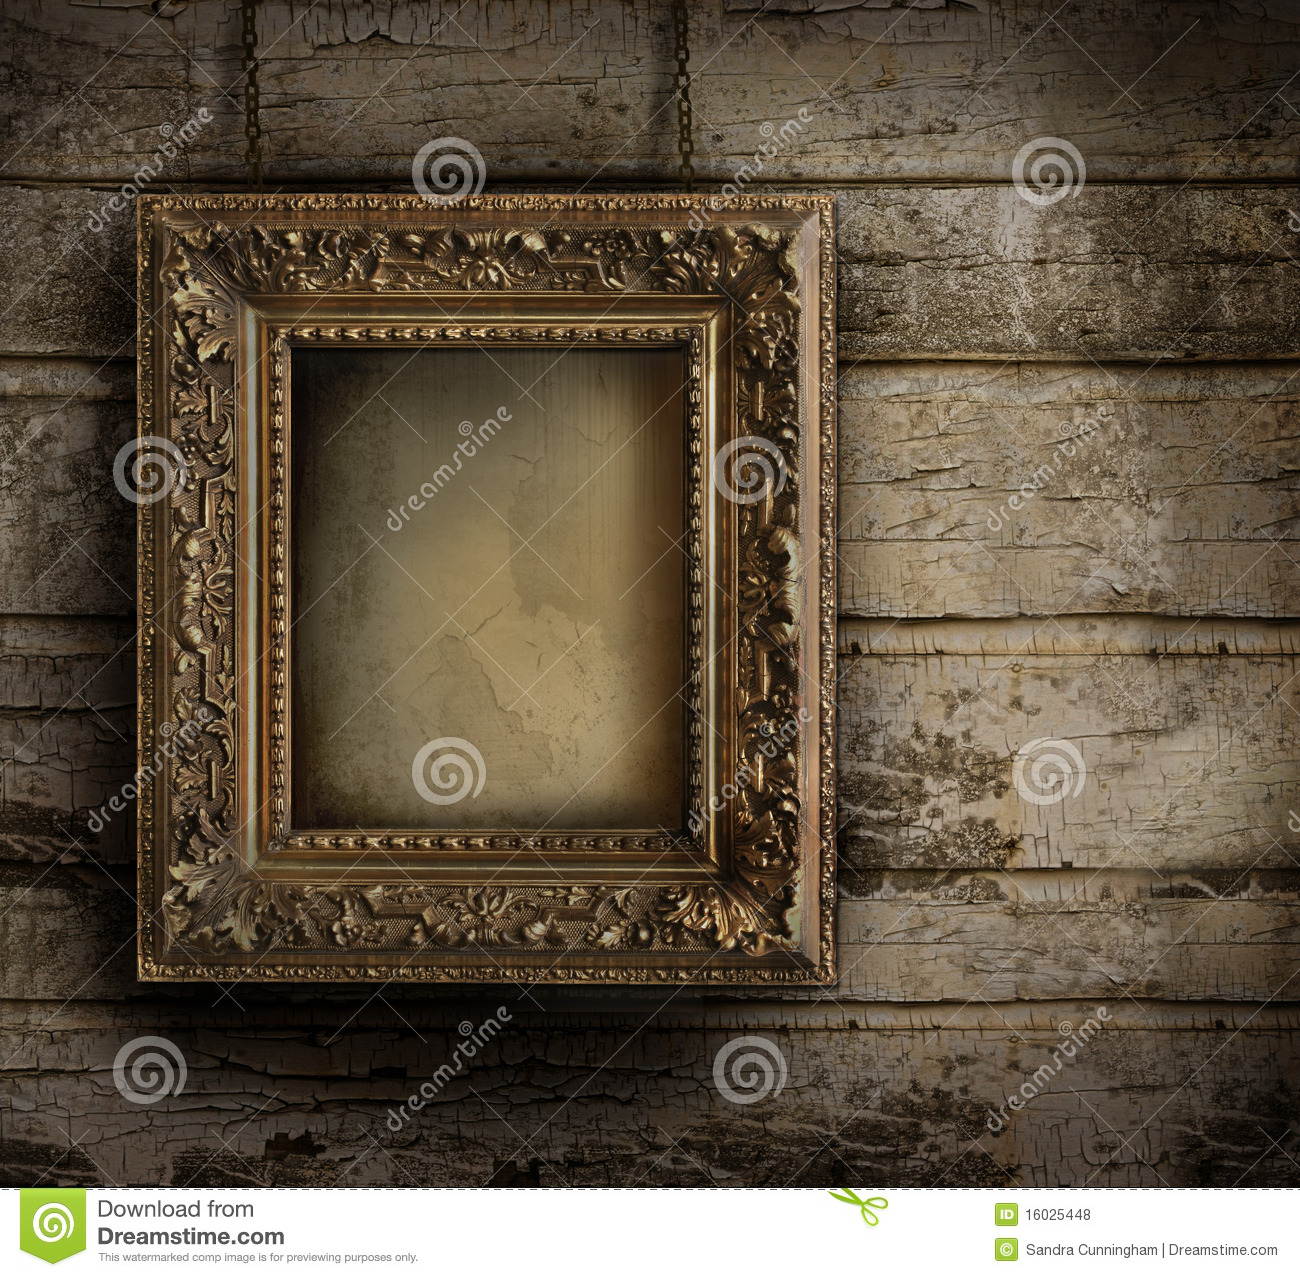 Old frame against a painted wall